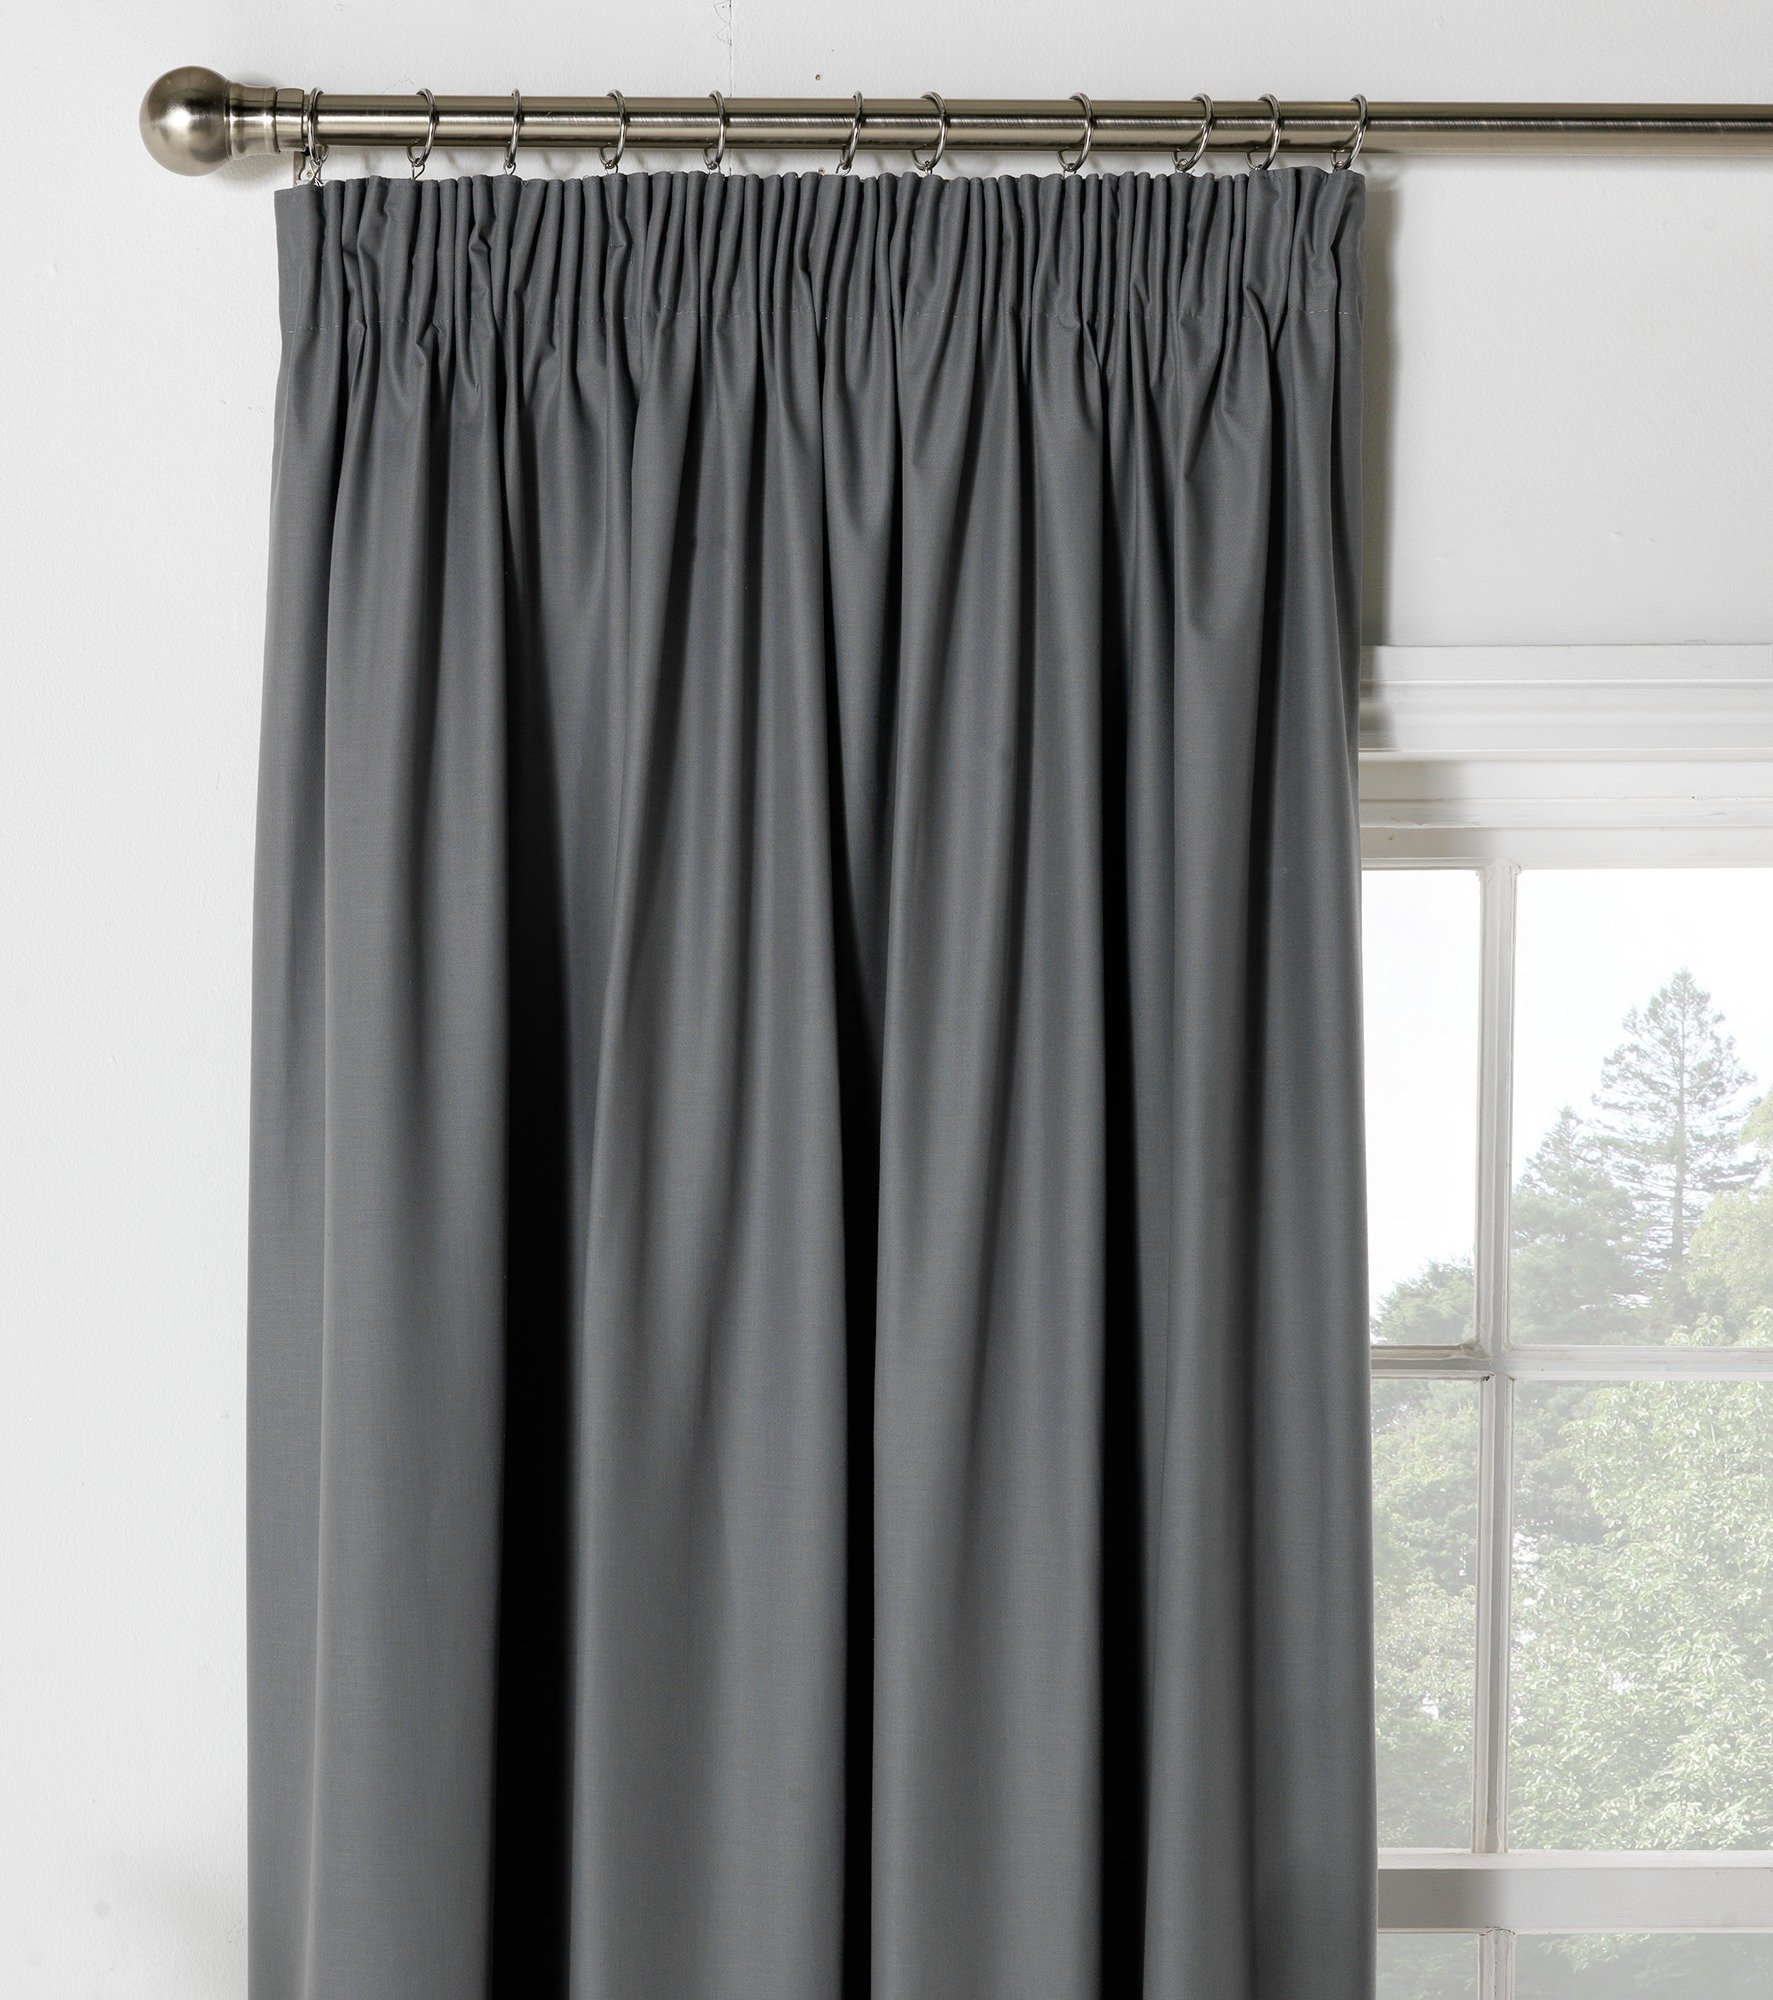 Shower Curtain Tension Rod | Mounted Shower Curtain Rod | Extra Long Shower Curtain Rod Tension